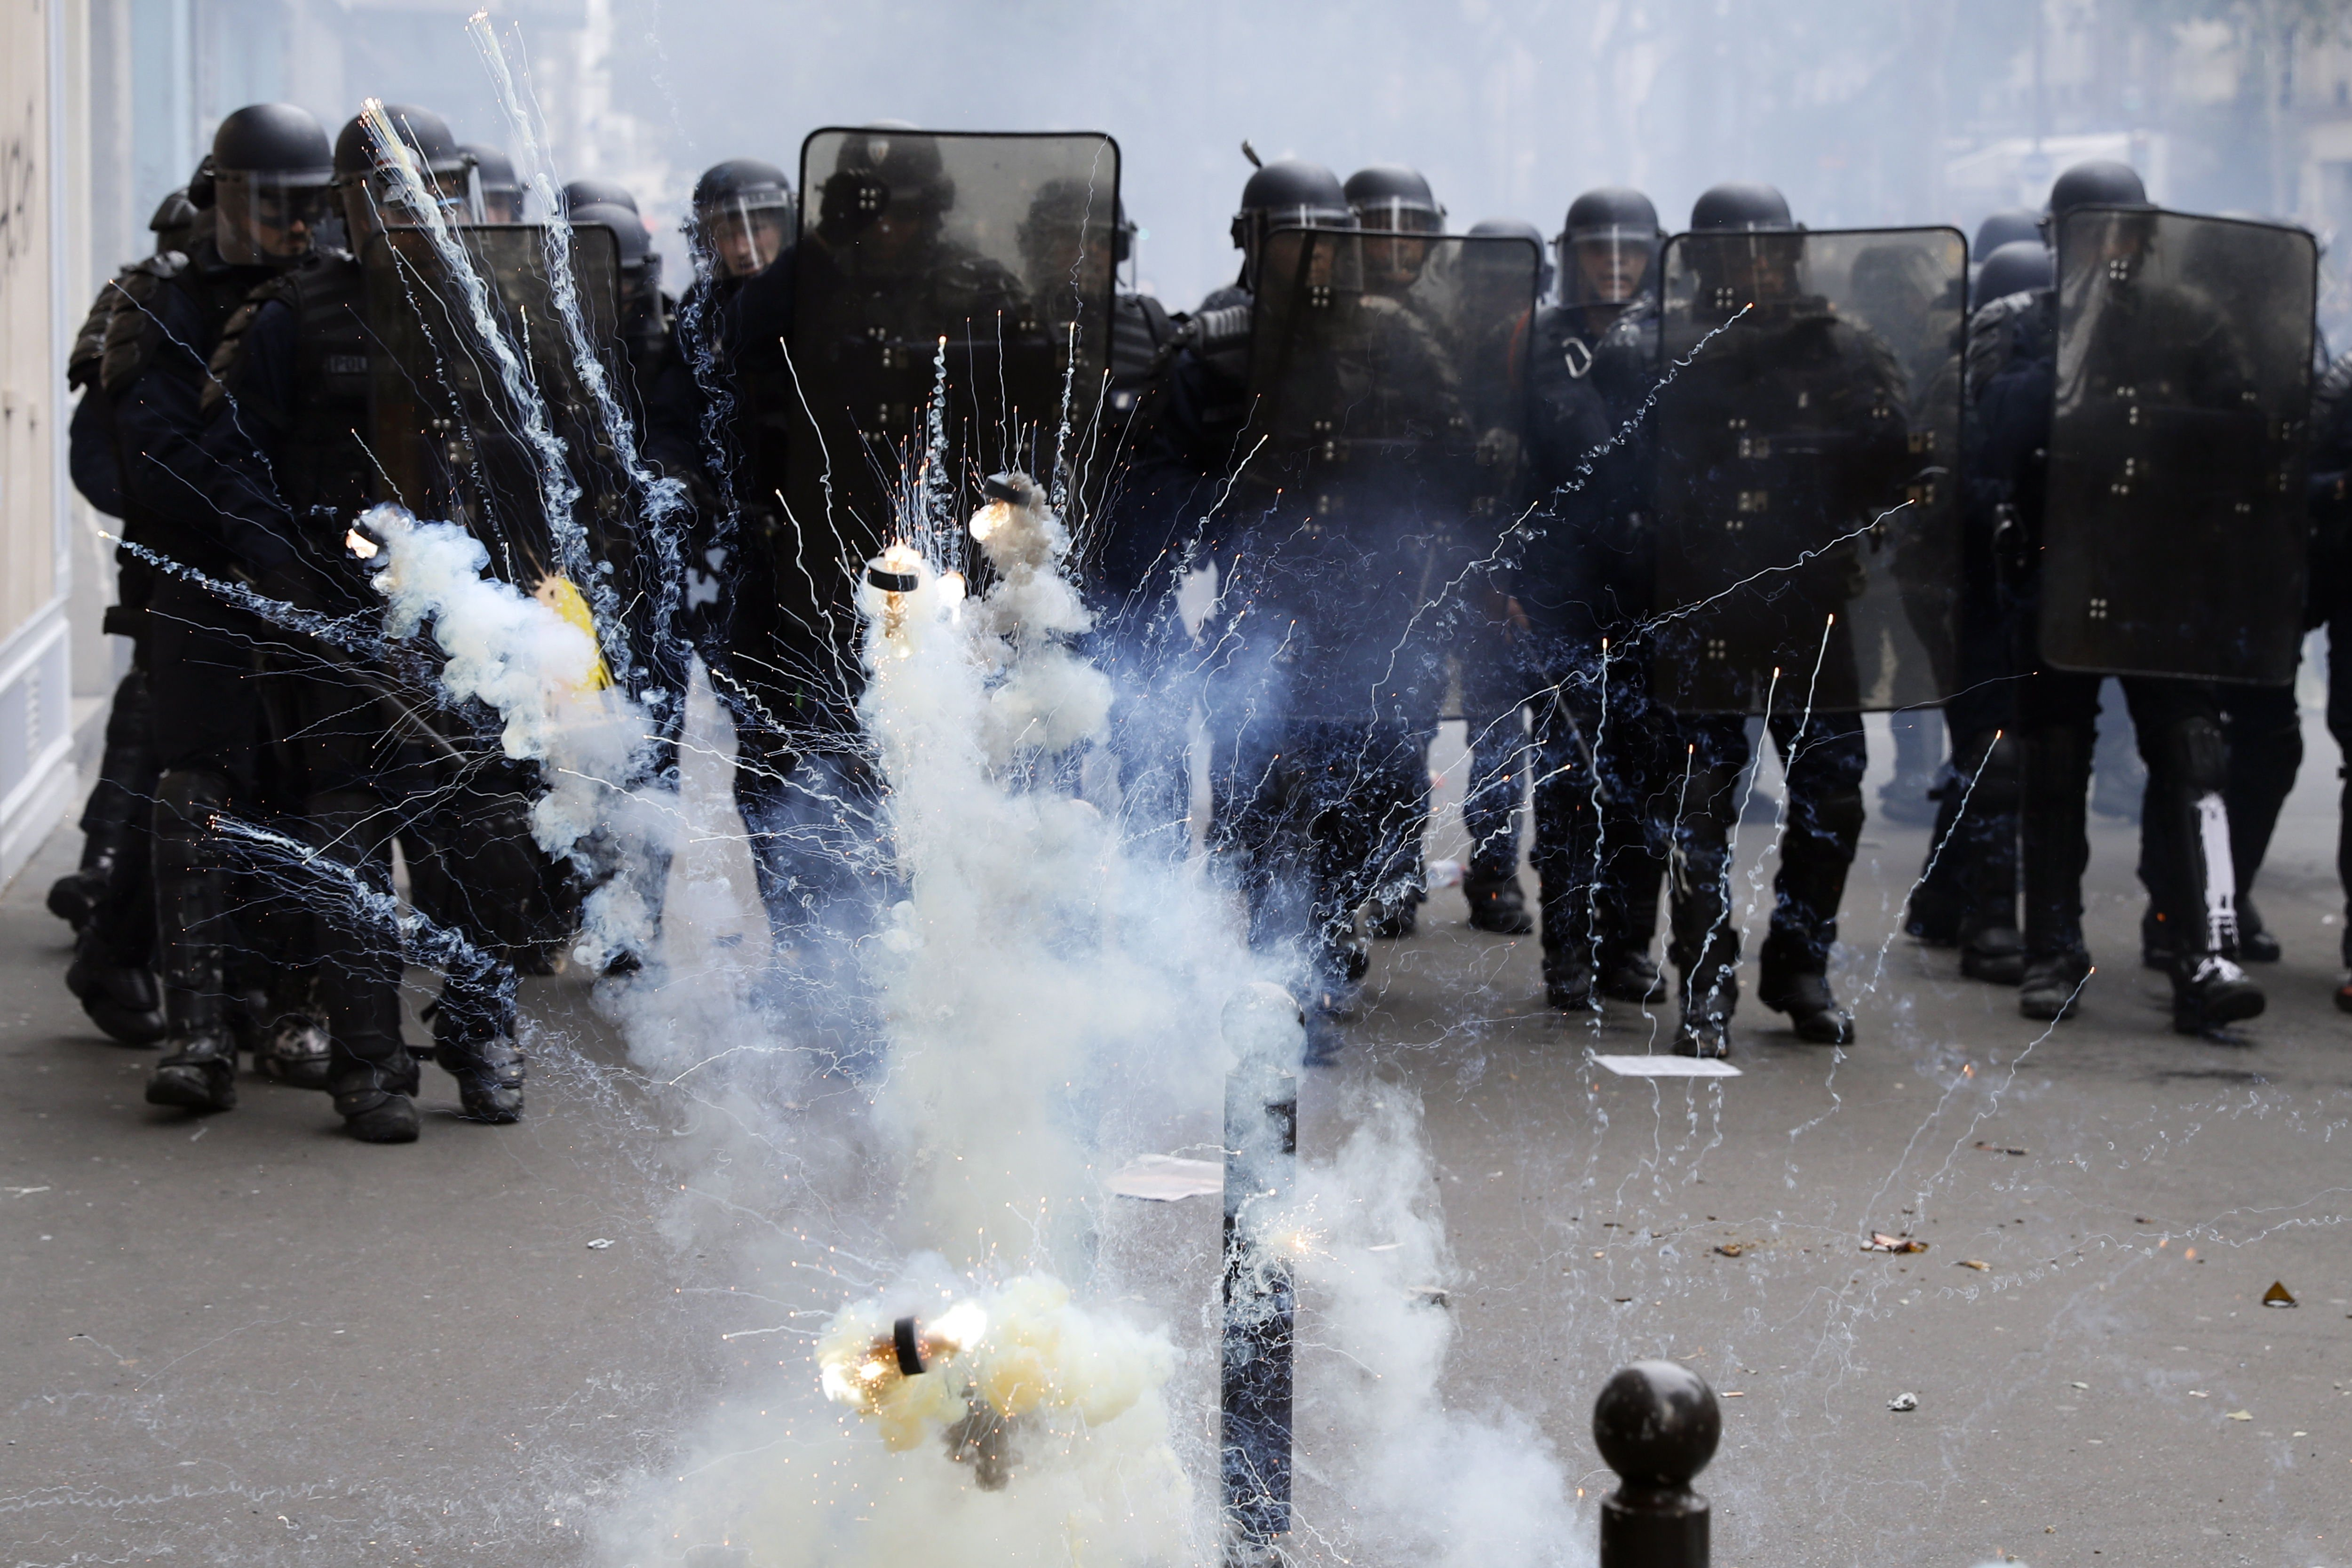 Paris (France), 26/05/2018.- Tear gas palest pucks explode in front of French riot police officers during clashes with a group of protesters as thousands of people demonstrate against French government reforms in Paris, France, 26 May 2018. Far left political parties and French trade union CGT (General Confederation of Labour) call for a national day of protest against the government policies. (Protestas, Francia, Estados Unidos) EFE/EPA/ETIENNE LAURENT